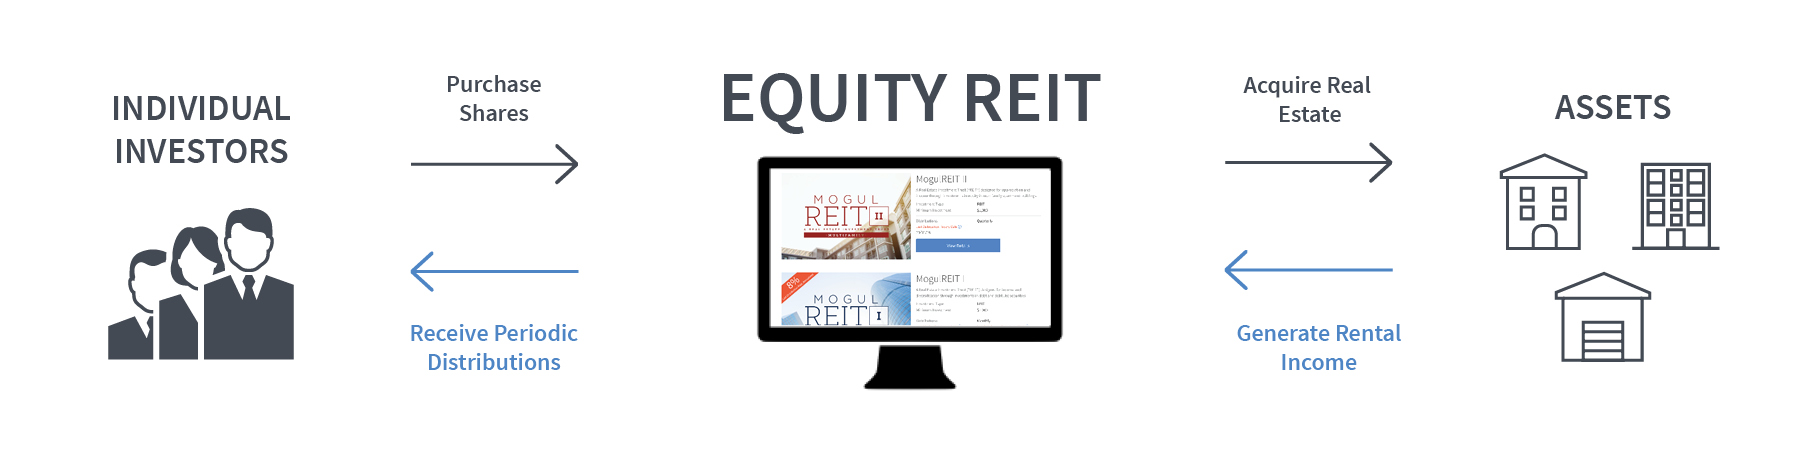 Equity REITs and how they work